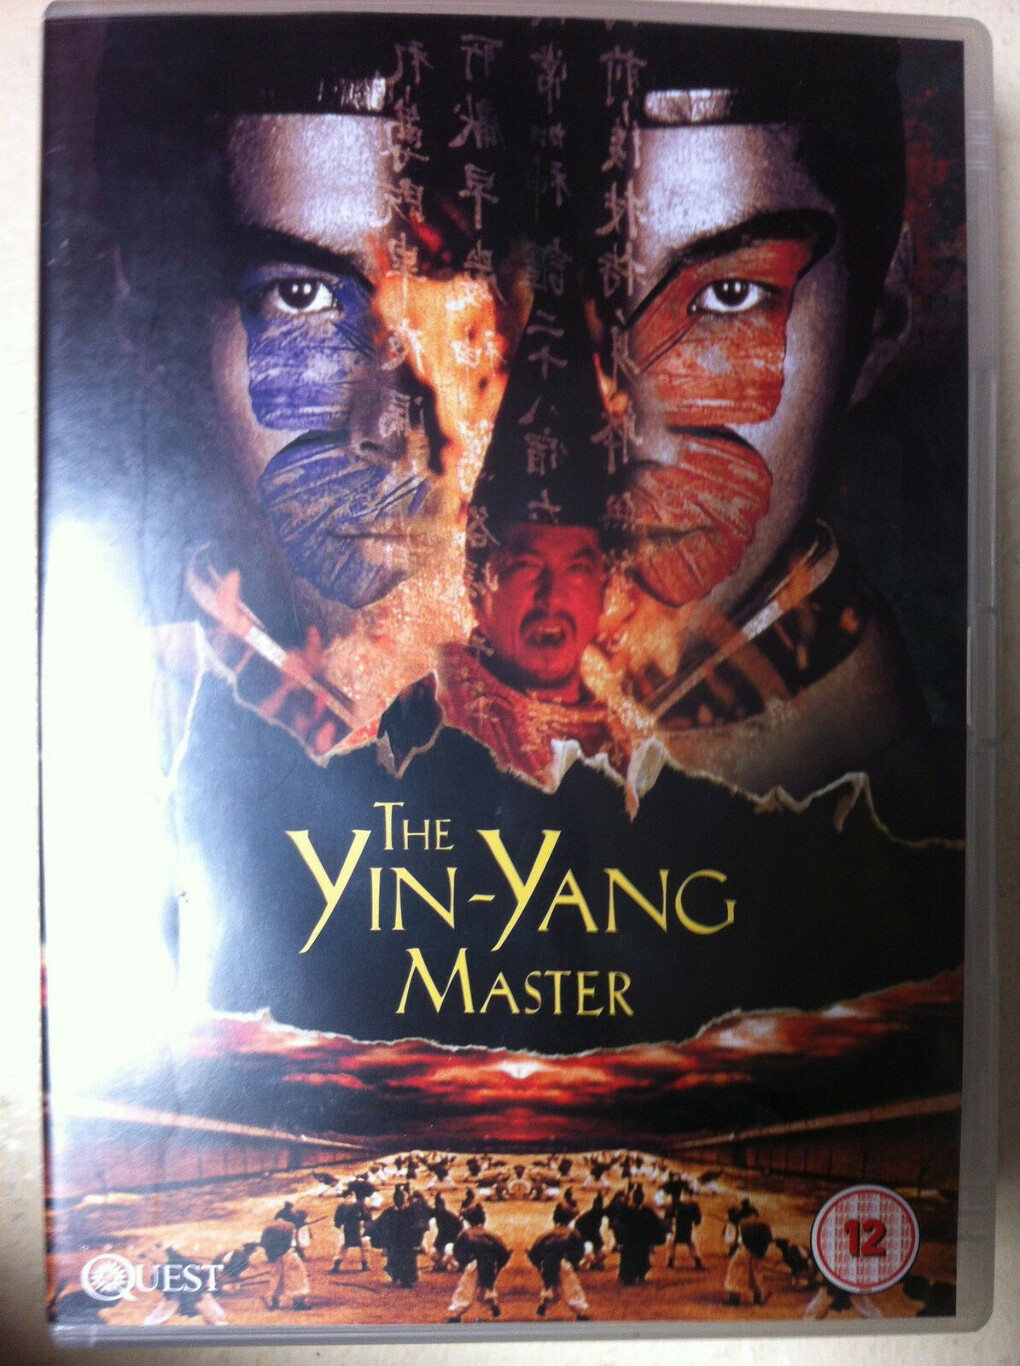 Hideaki Ito Mansai Nomura THE YIN YANG MASTER Japanese Martial Arts Film UK DVD